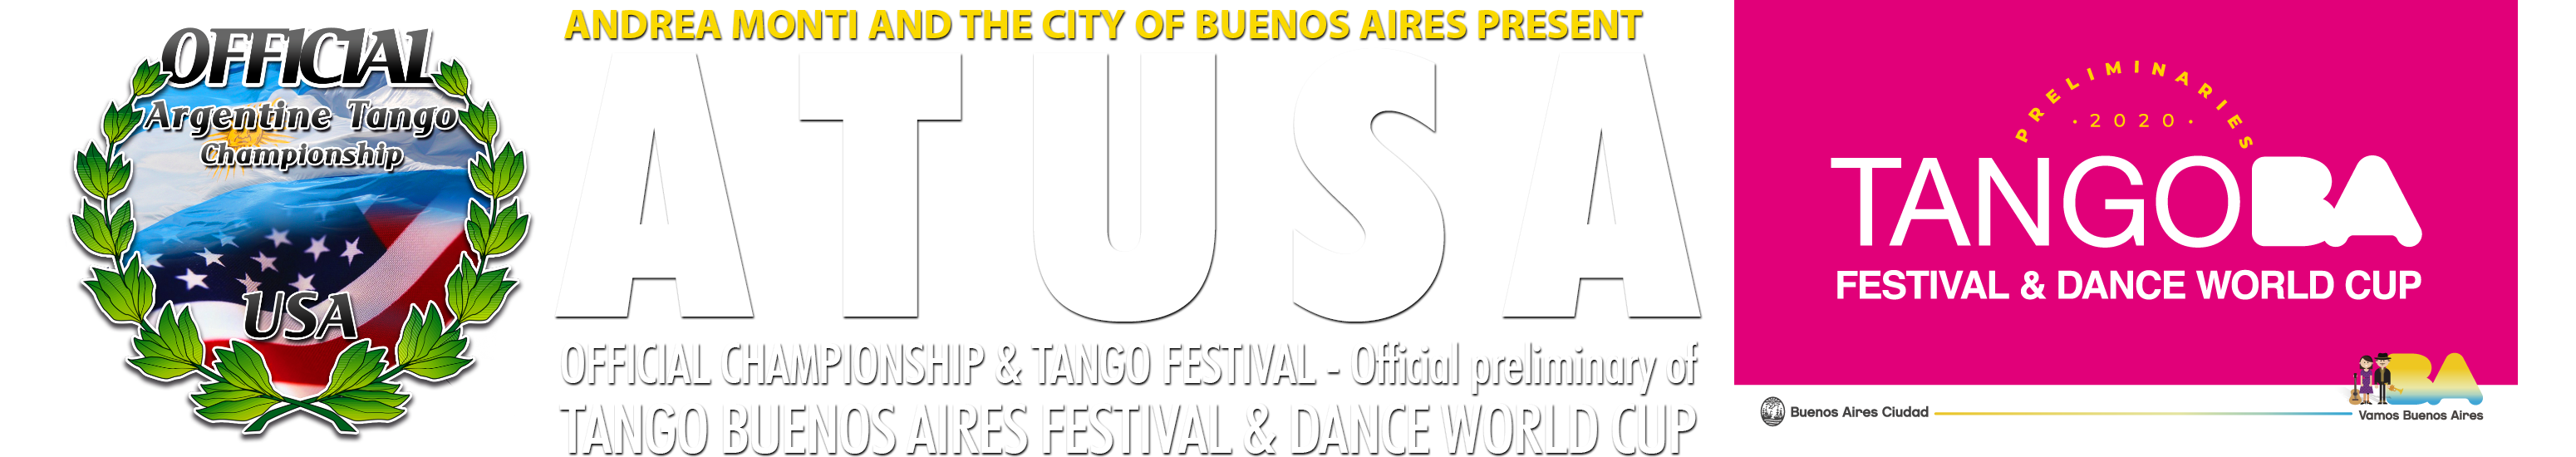 ARGENTINE TANGO U.S.A. Logo